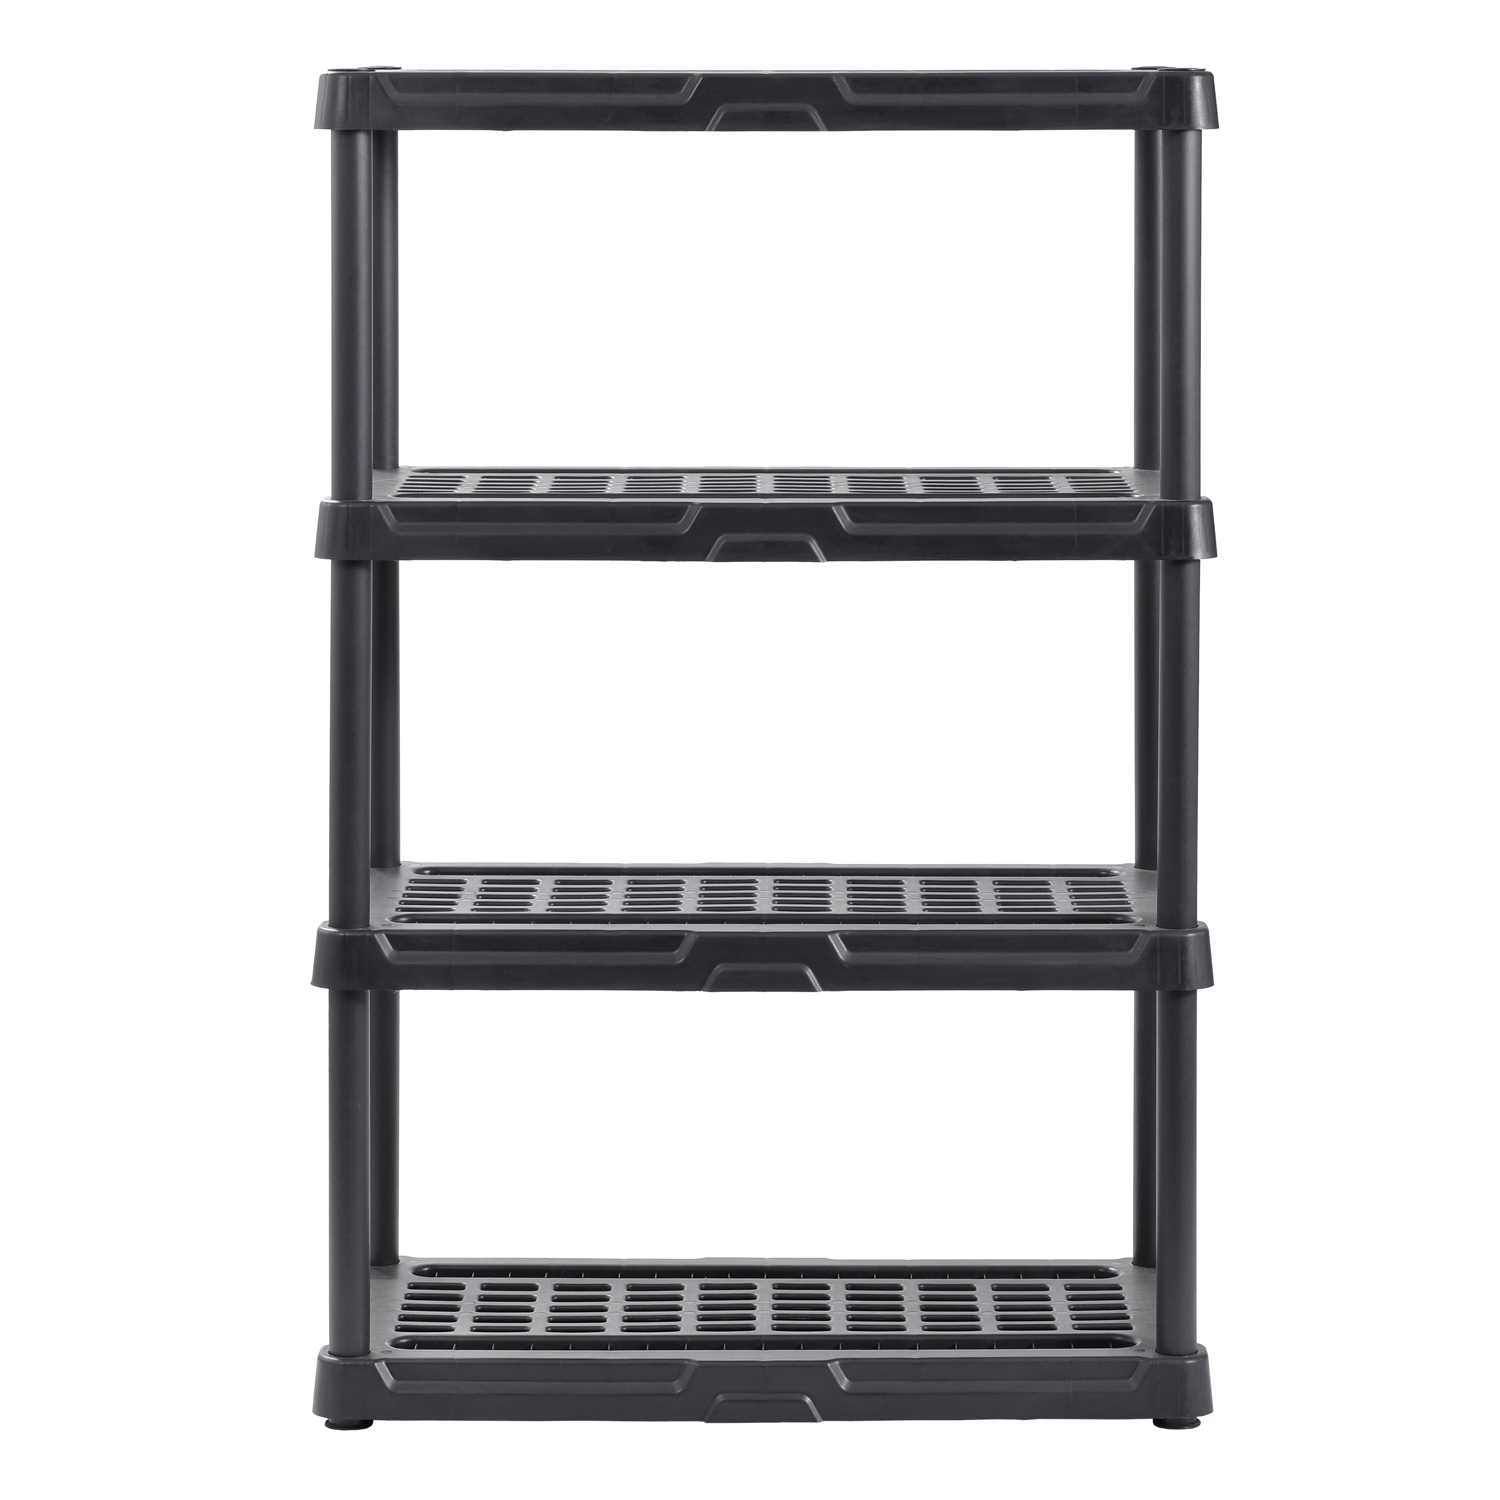 "Muscle Rack 36""W x 18""D x 56""H Four-Shelf Resin Shelving, Black"